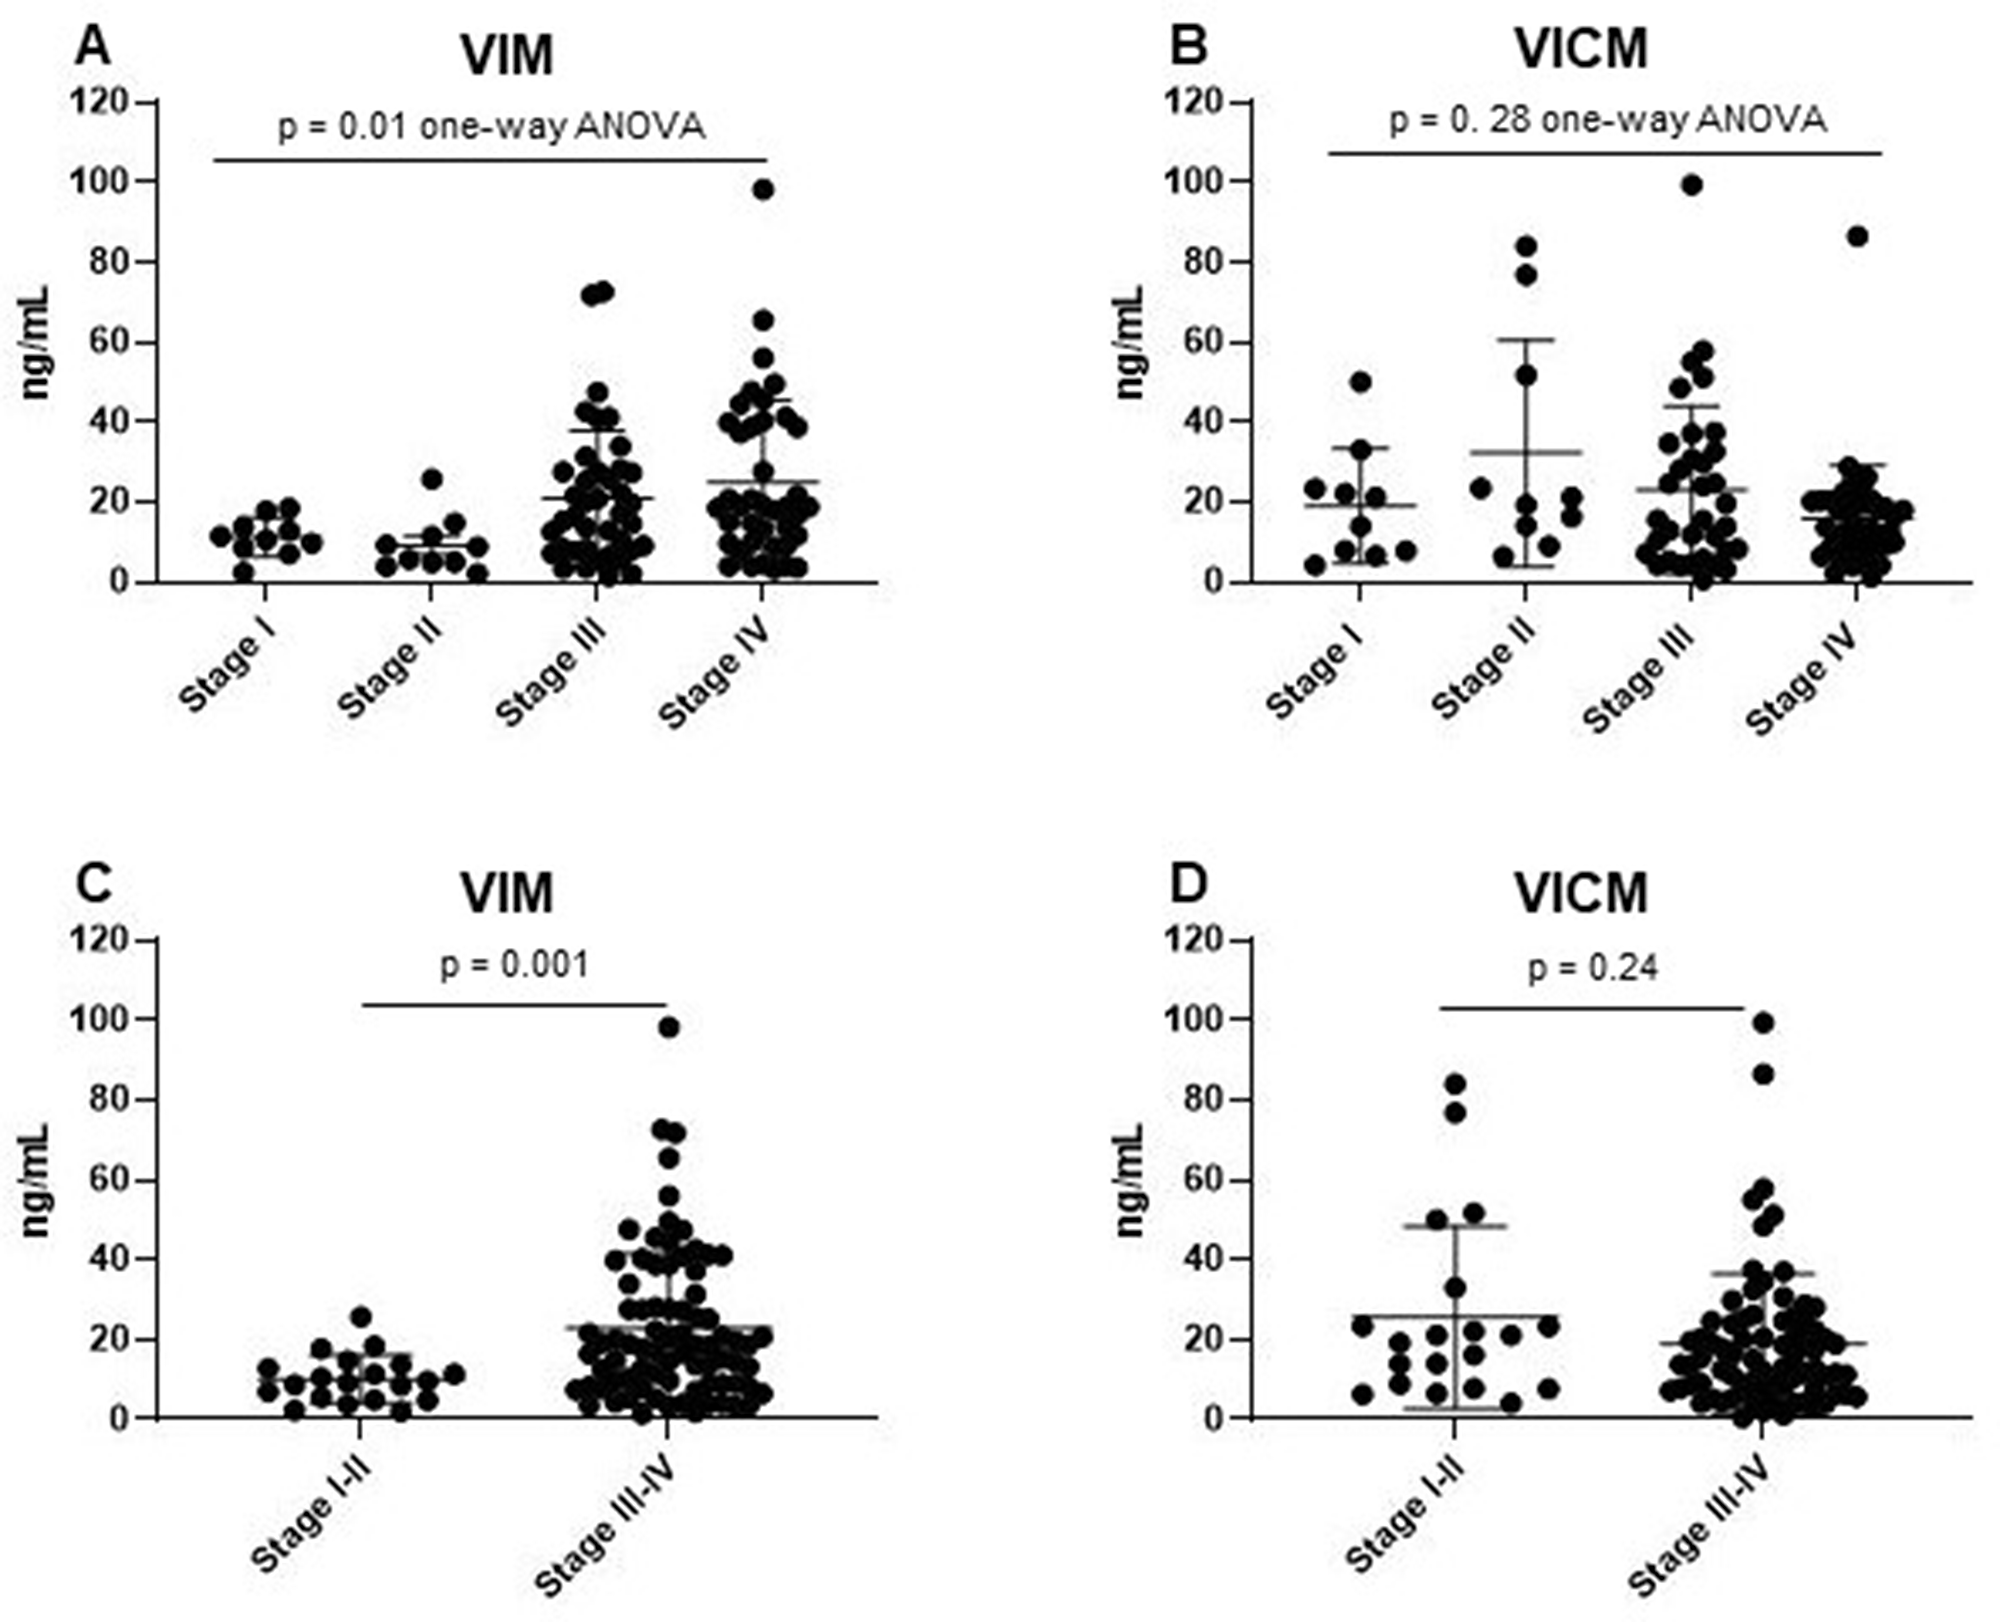 Clinical evaluation of MMP-degraded vimentin (VIM) and MMP-degraded and citrullinated vimentin (VICM) in patients with non-small cell lung cancer (NSCLC) according to TNM disease stage.